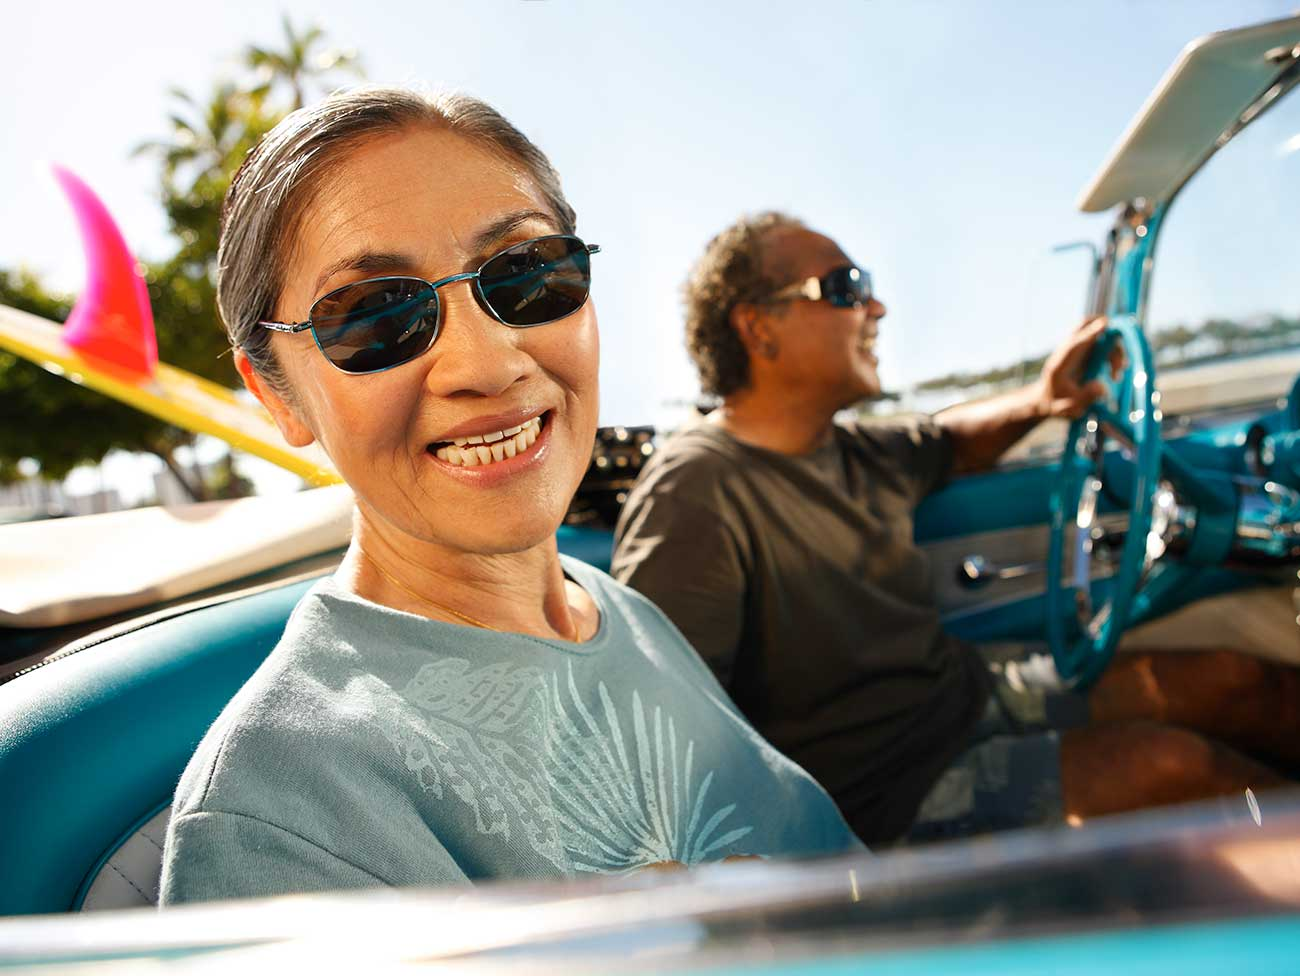 Woman and man riding in a convertible with a surfboard in the back seat